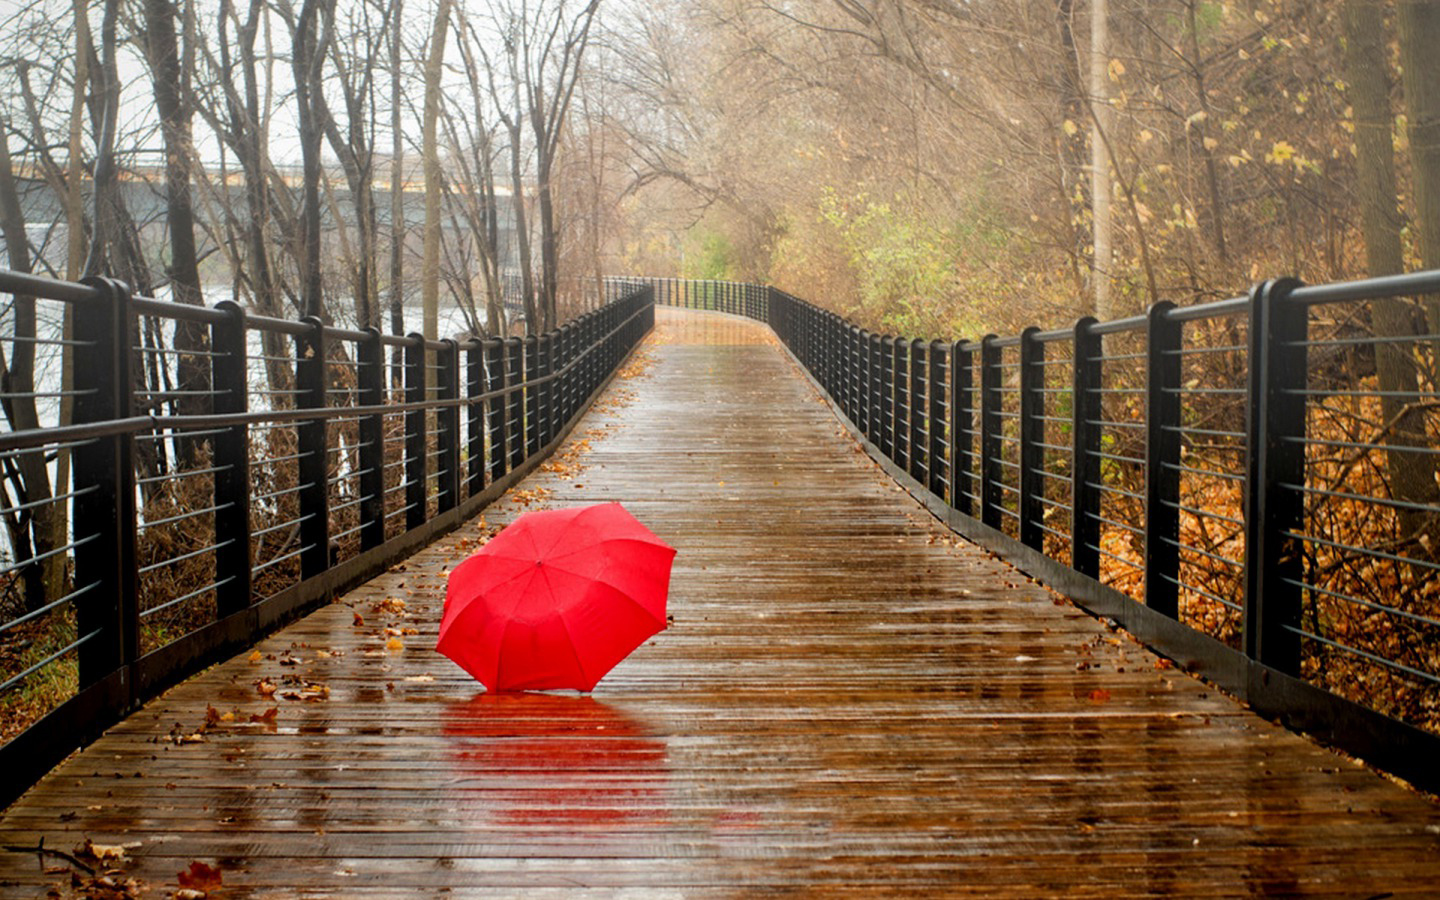 Free download rainy day hd wallpapers 1440x900 for your desktop mobile tablet explore 74 - Rainy hd wallpaper for pc ...